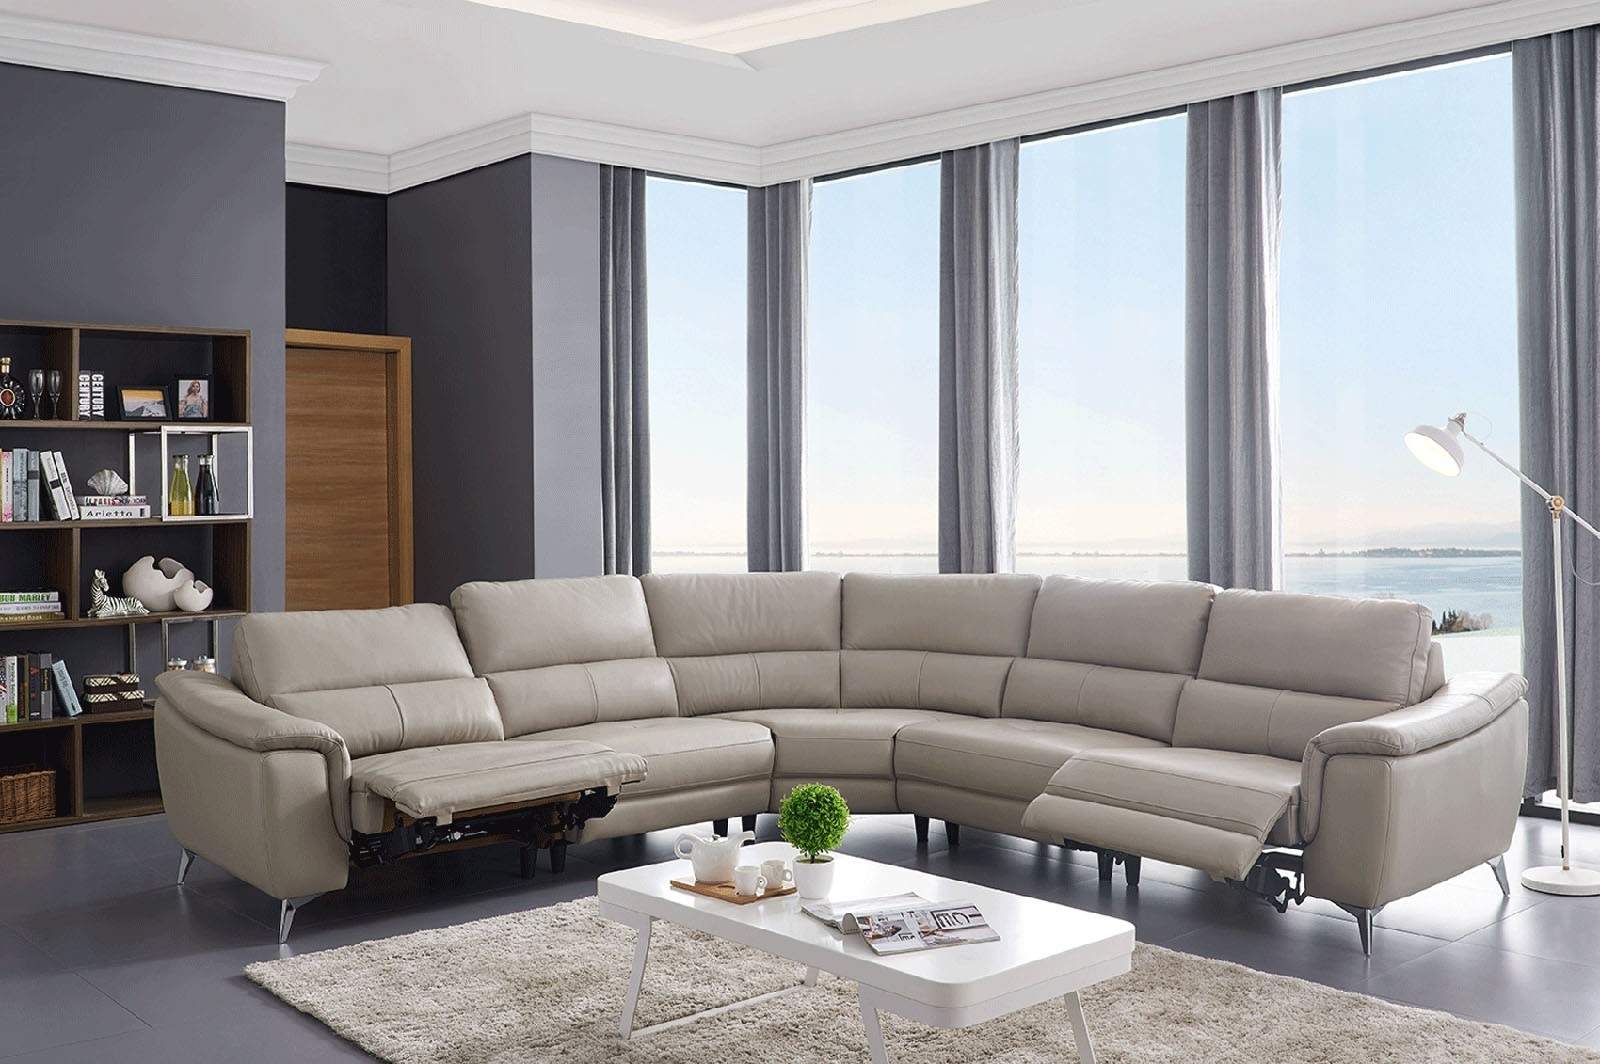 ESF 951 Reclining Sectional Sofa in Light Grey Leather